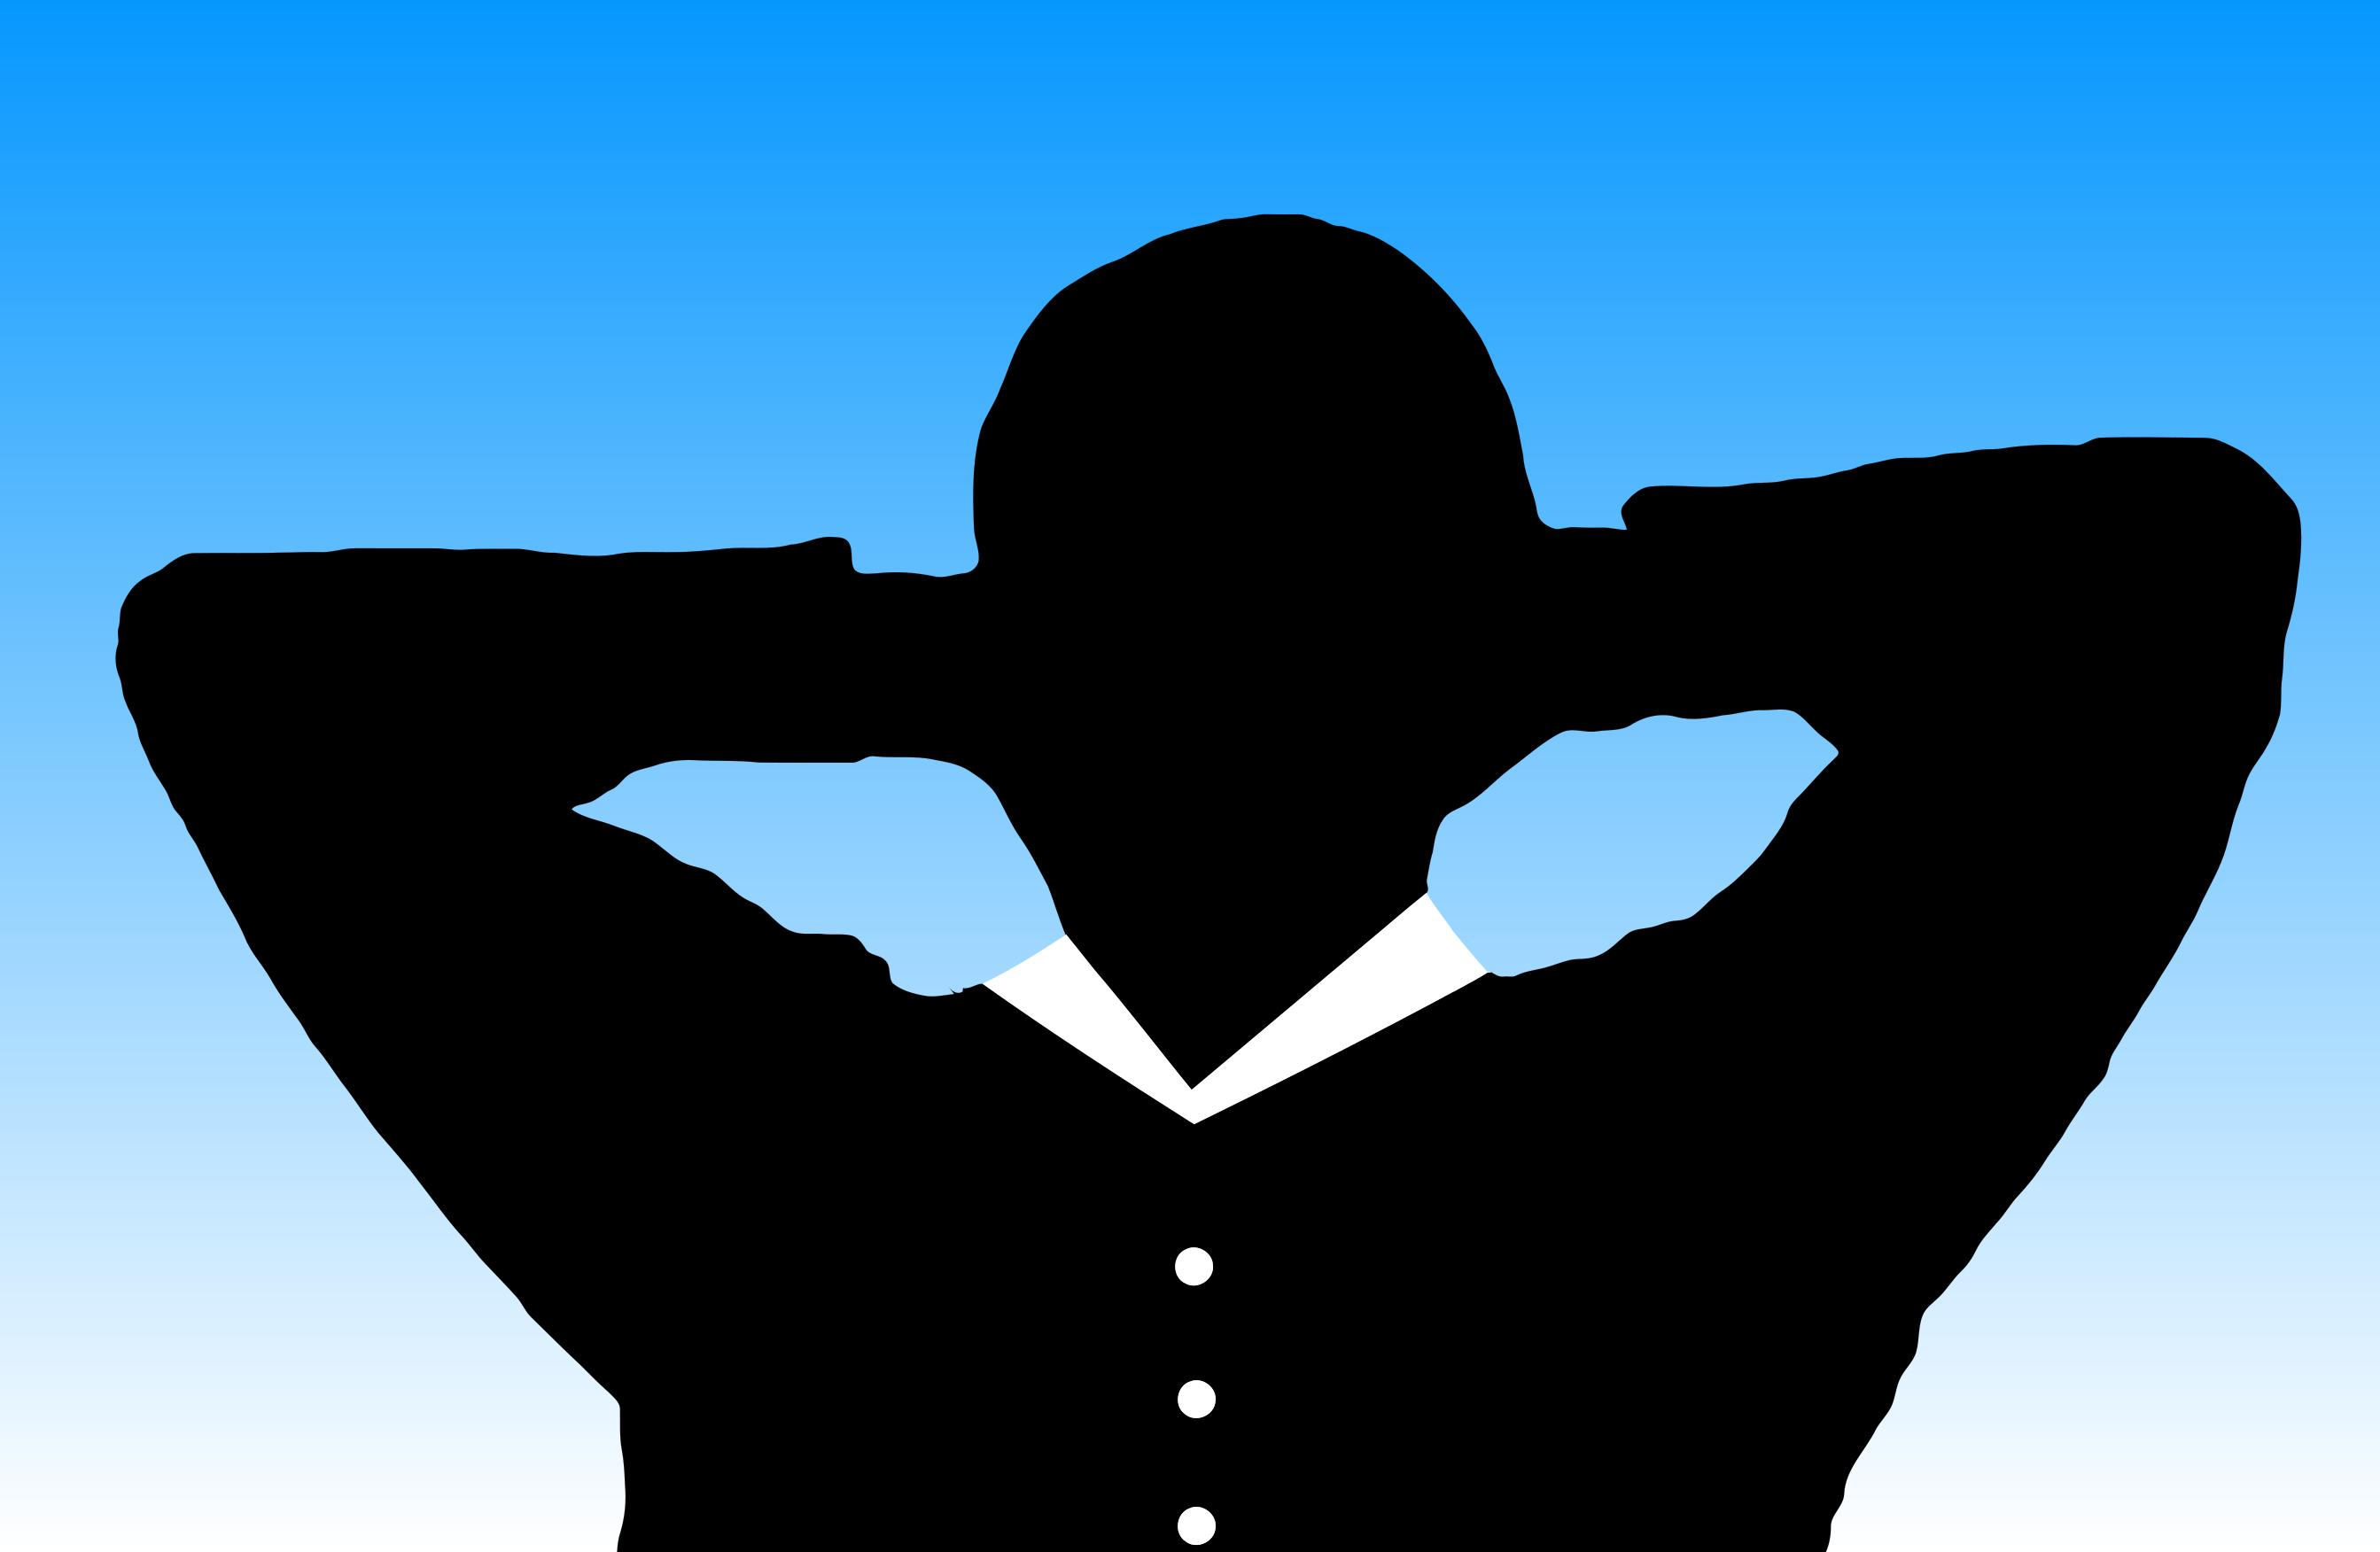 2686x1752 Man Relaxing With Hands Behind Head Silhouette With Background